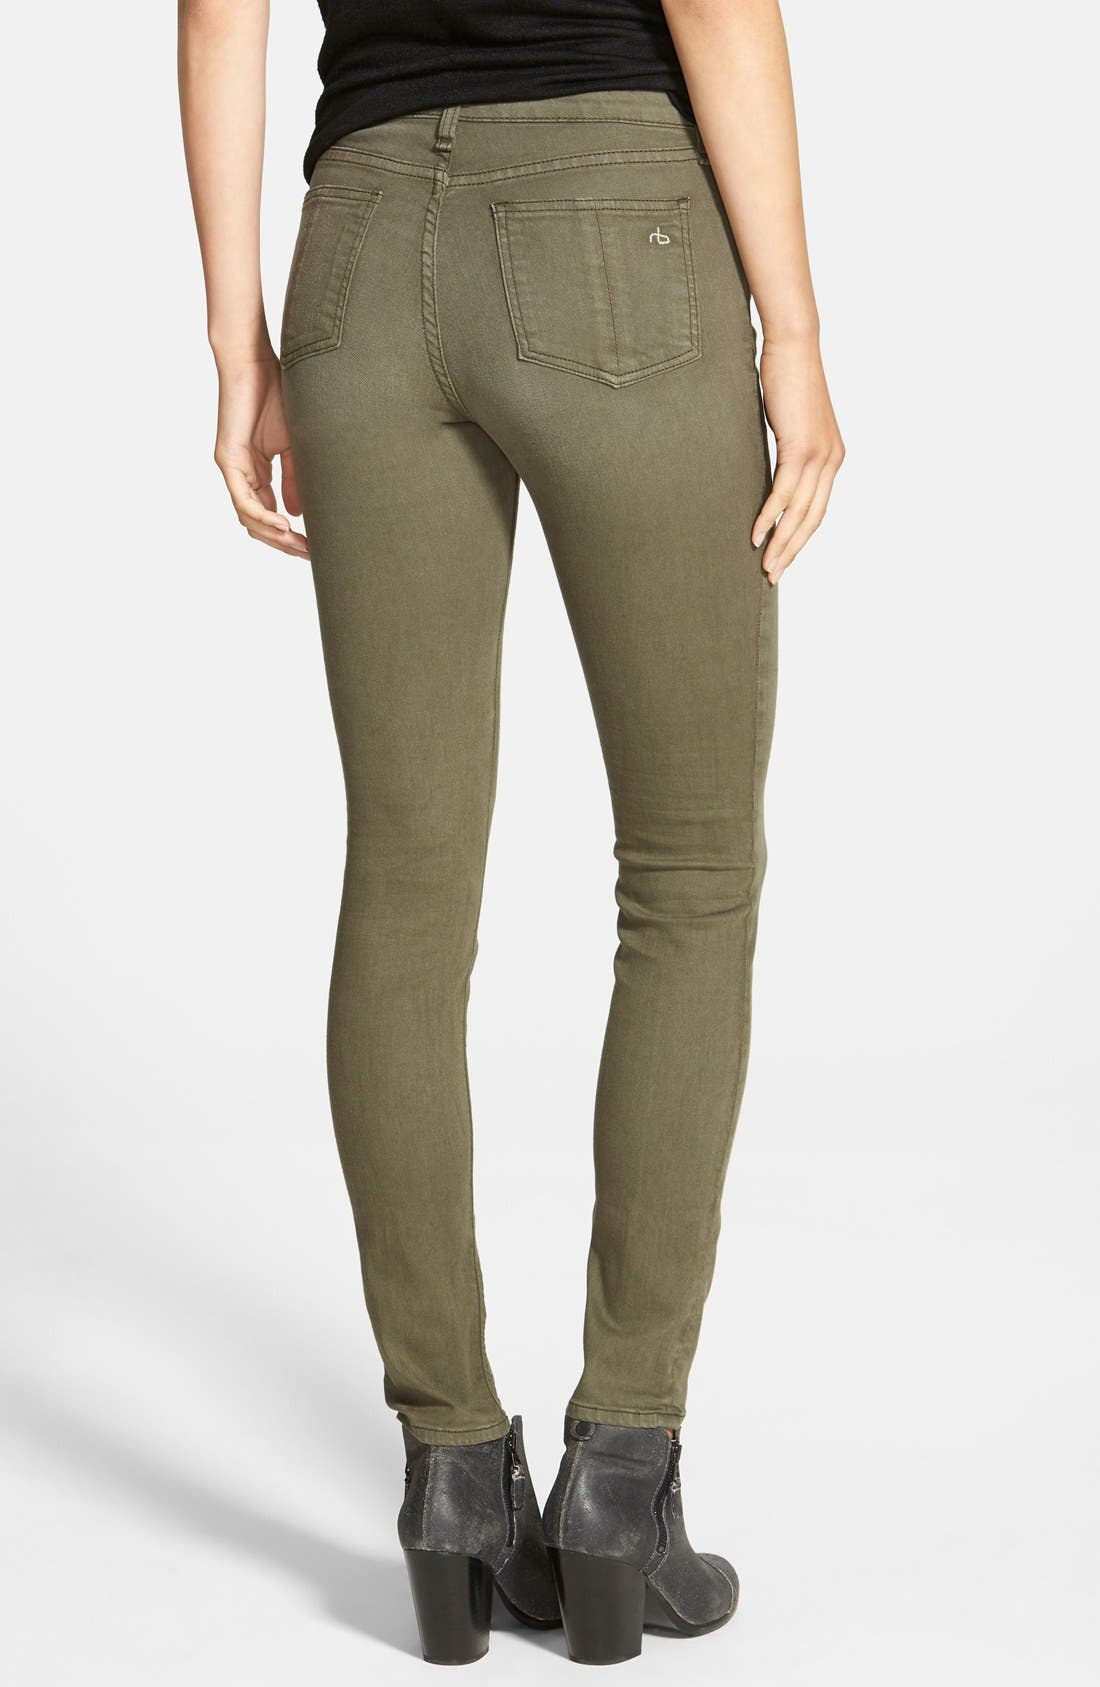 Alternate Image 2  - rag & bone/JEAN 'The Skinny' Jeans (Distressed Fatigue) (Nordstrom Exclusive)